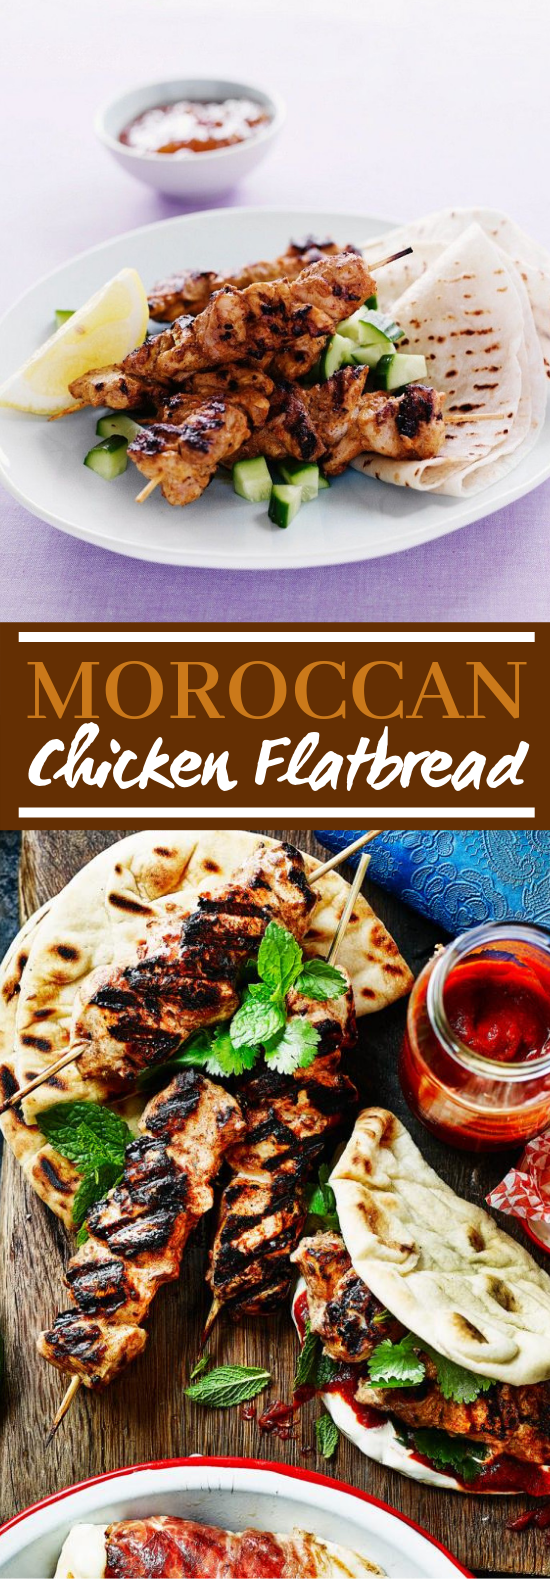 Moroccan Chicken Flatbreads #dinner #lunch